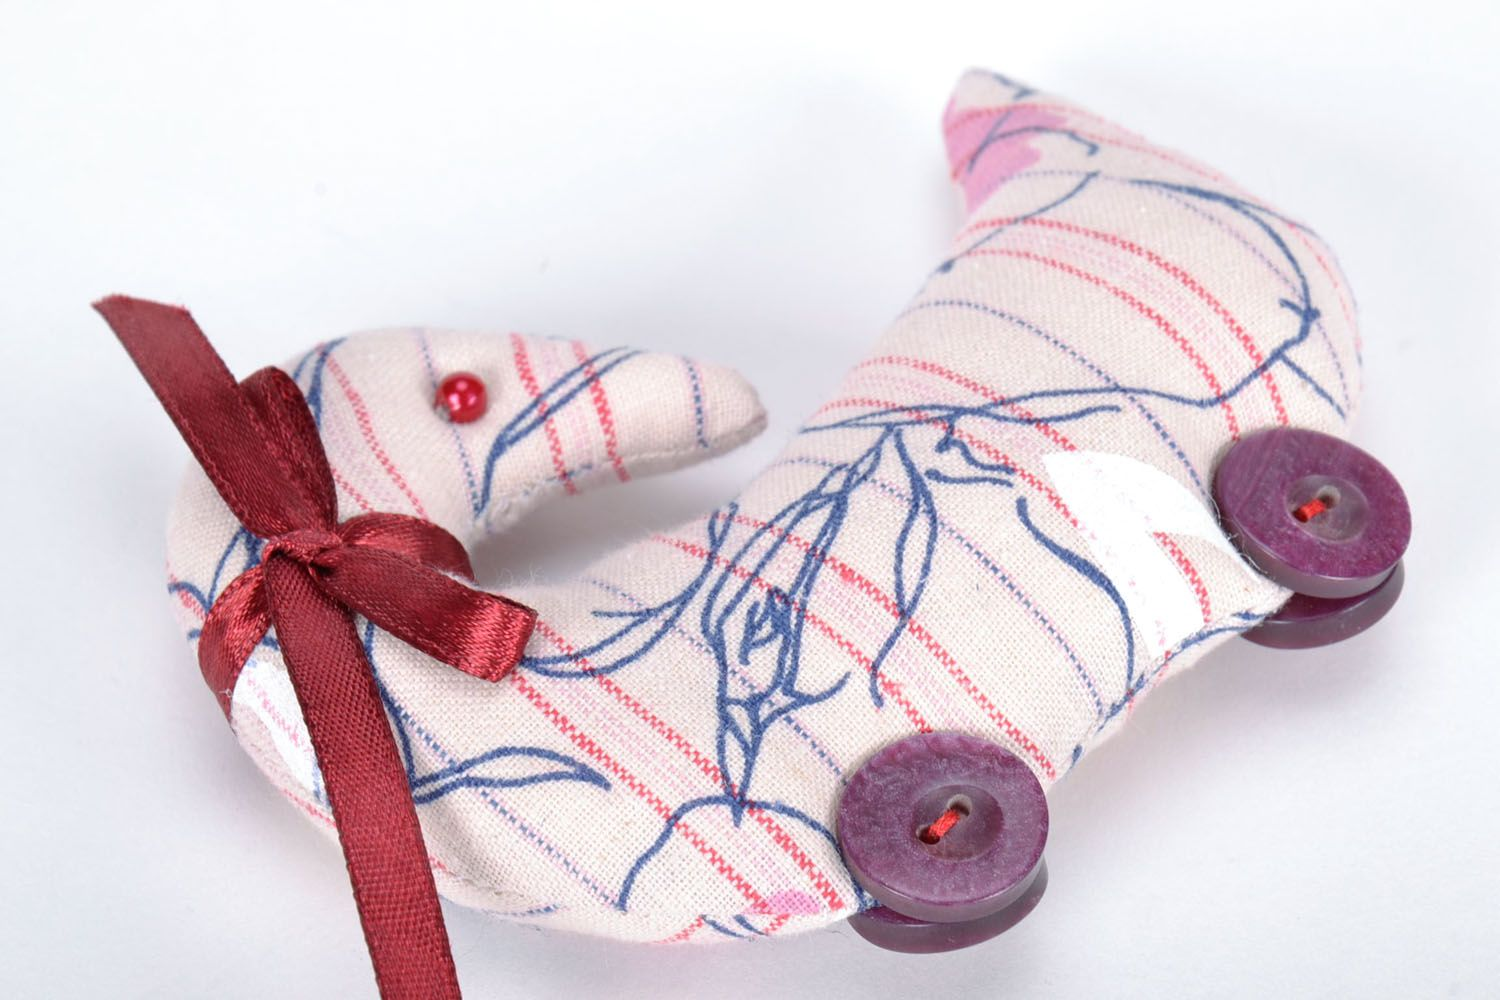 Flavored soft toy photo 3